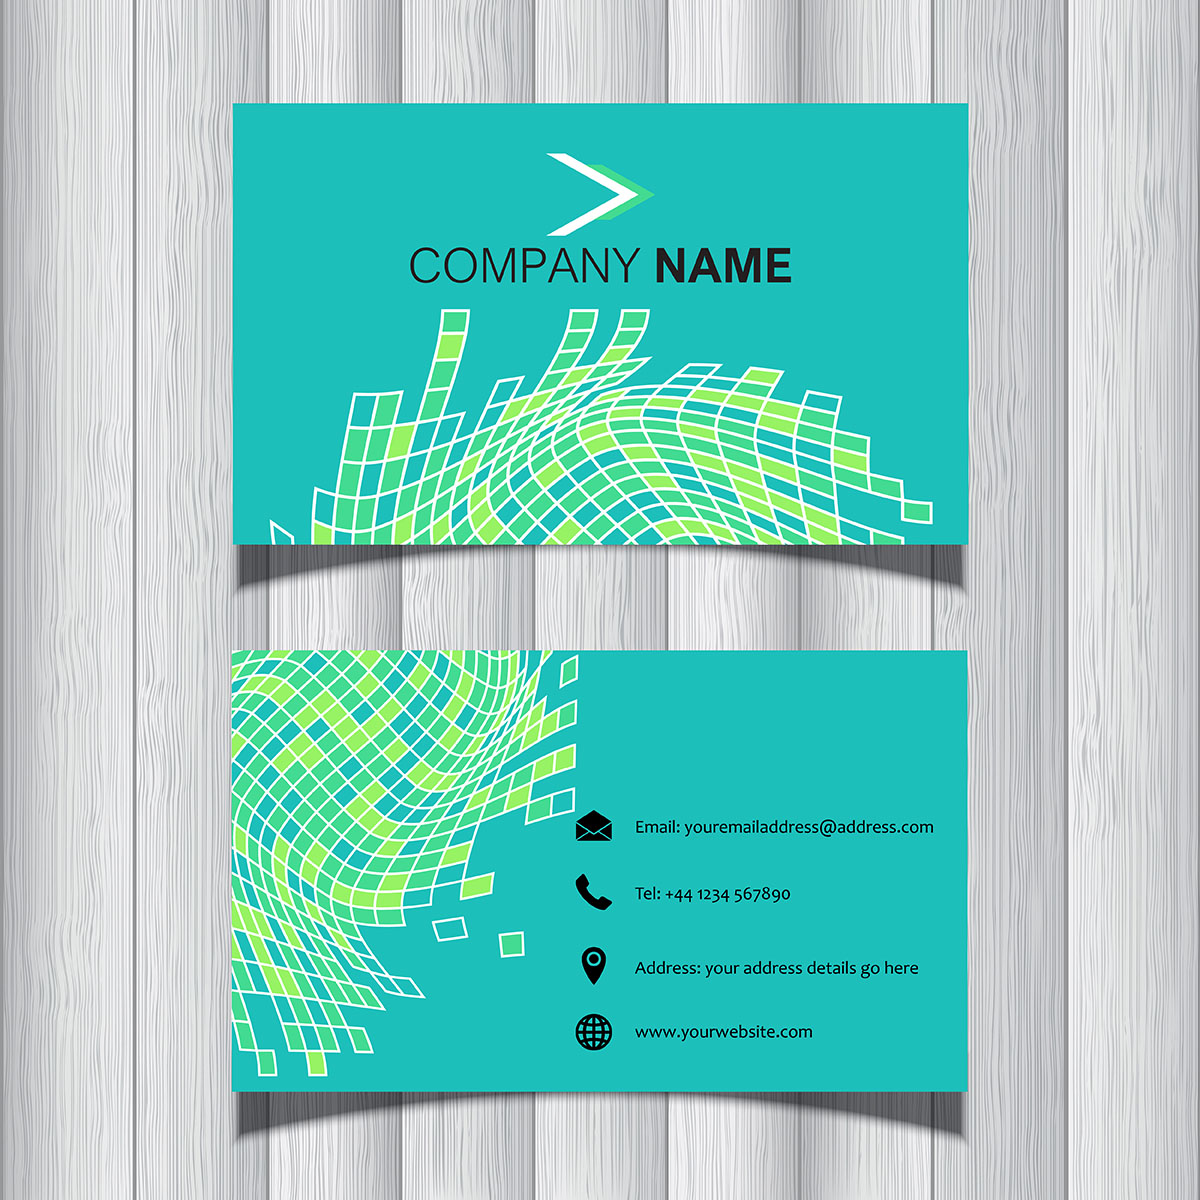 Blue Corporate Stationary Pack By Betty Design: Abstract Business Card Design